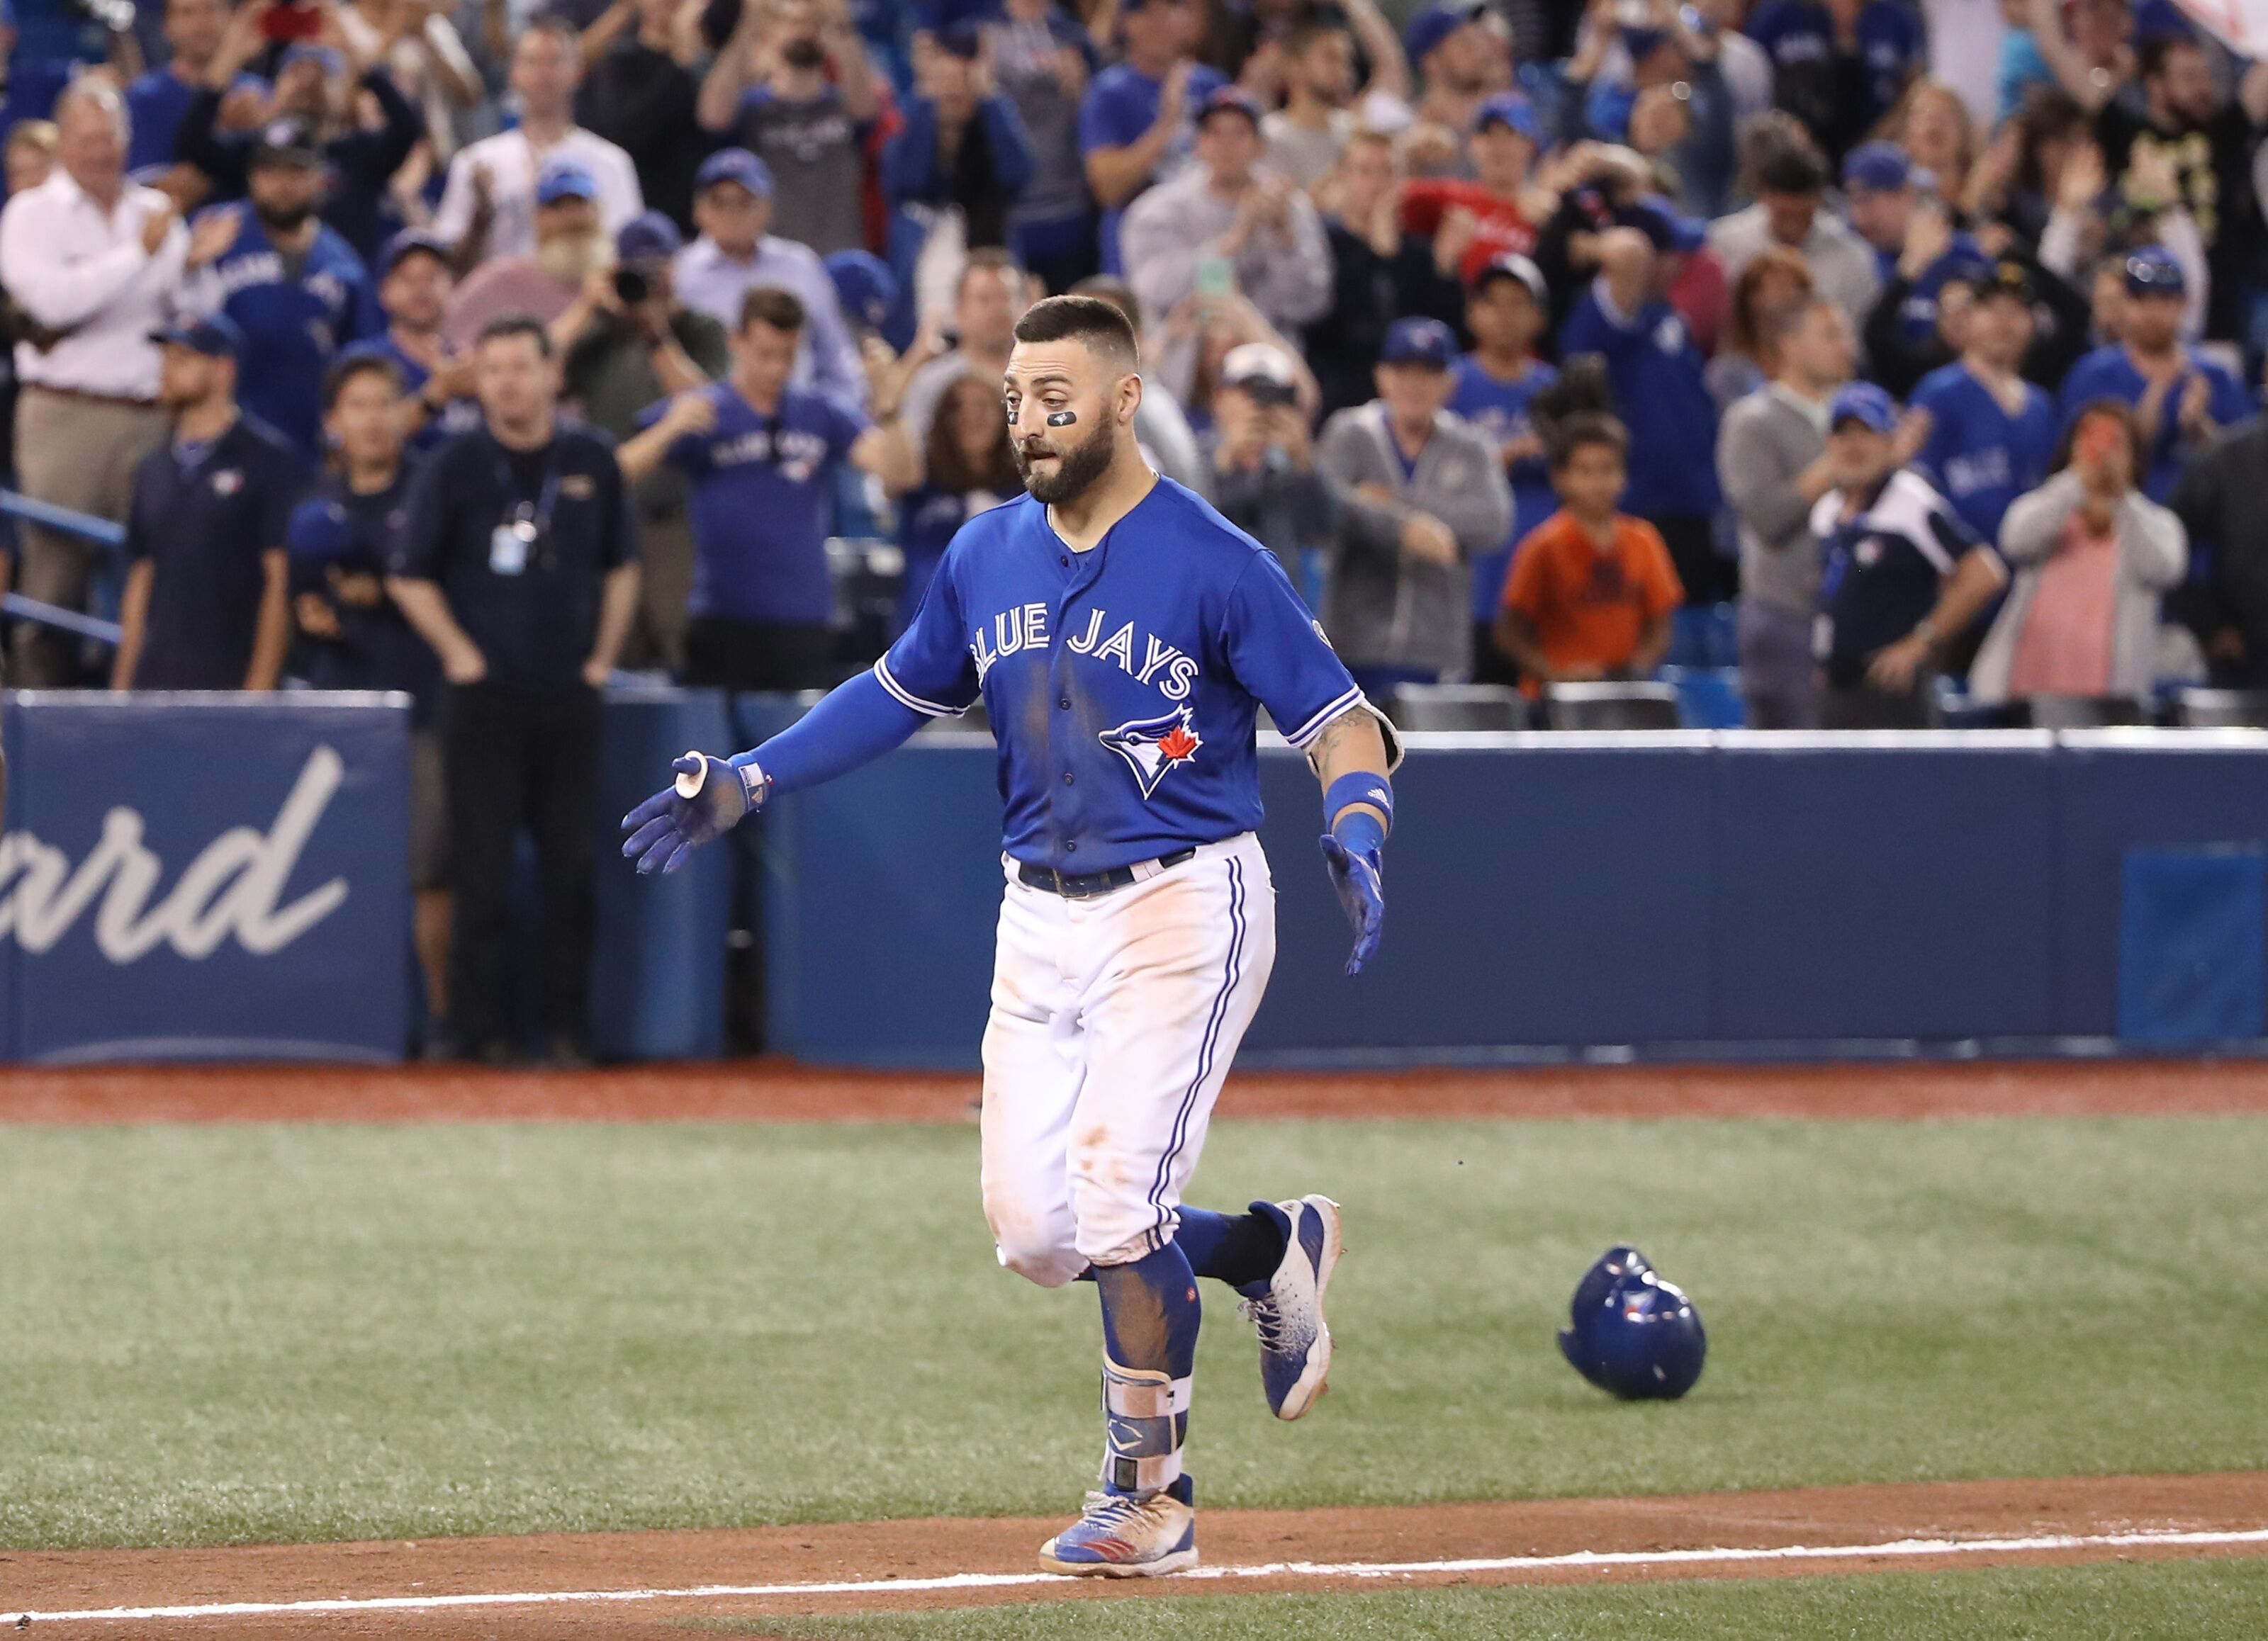 Blue Jays: Outfield depth makes Kevin Pillar expendable